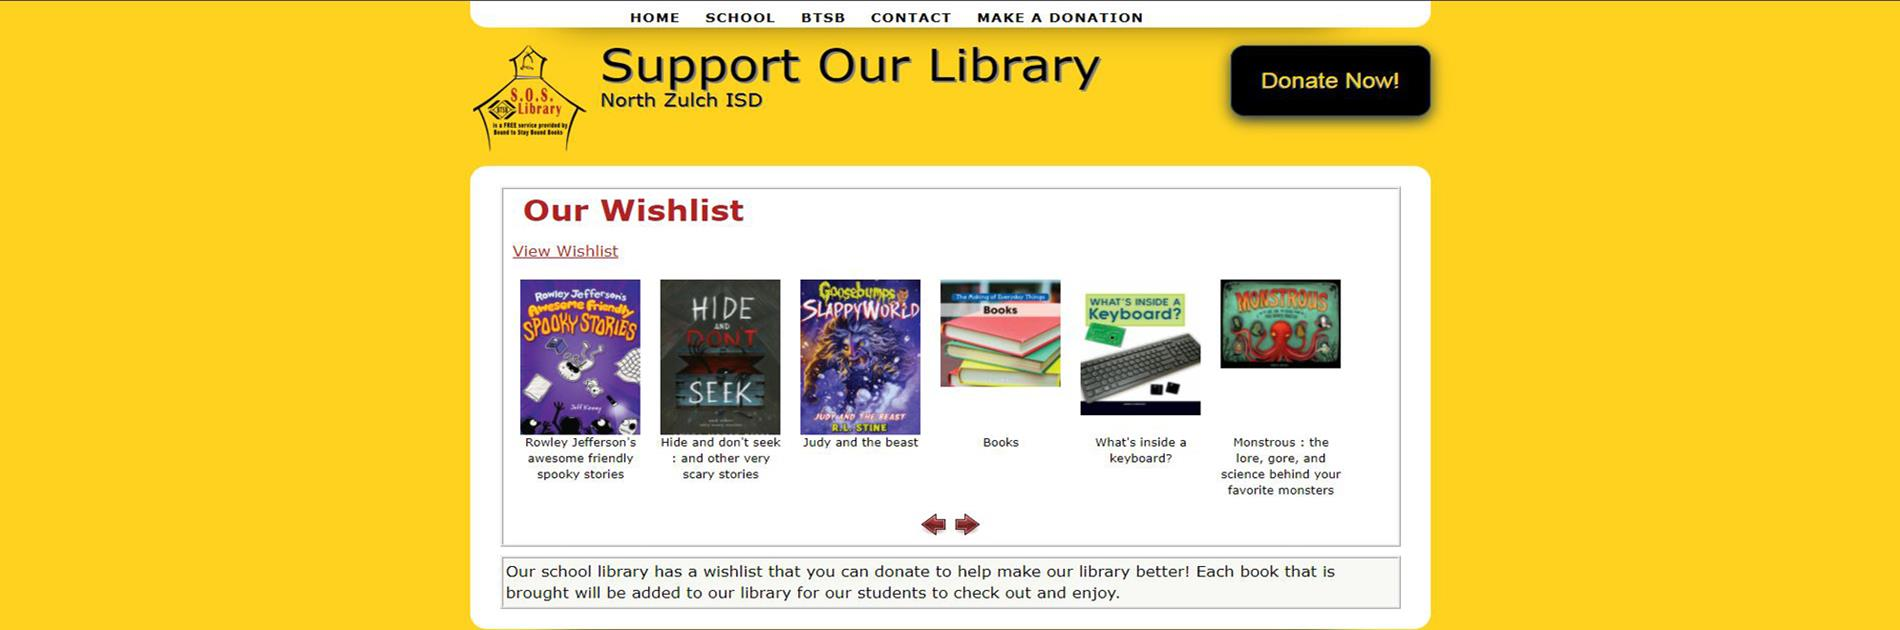 Support Our Library